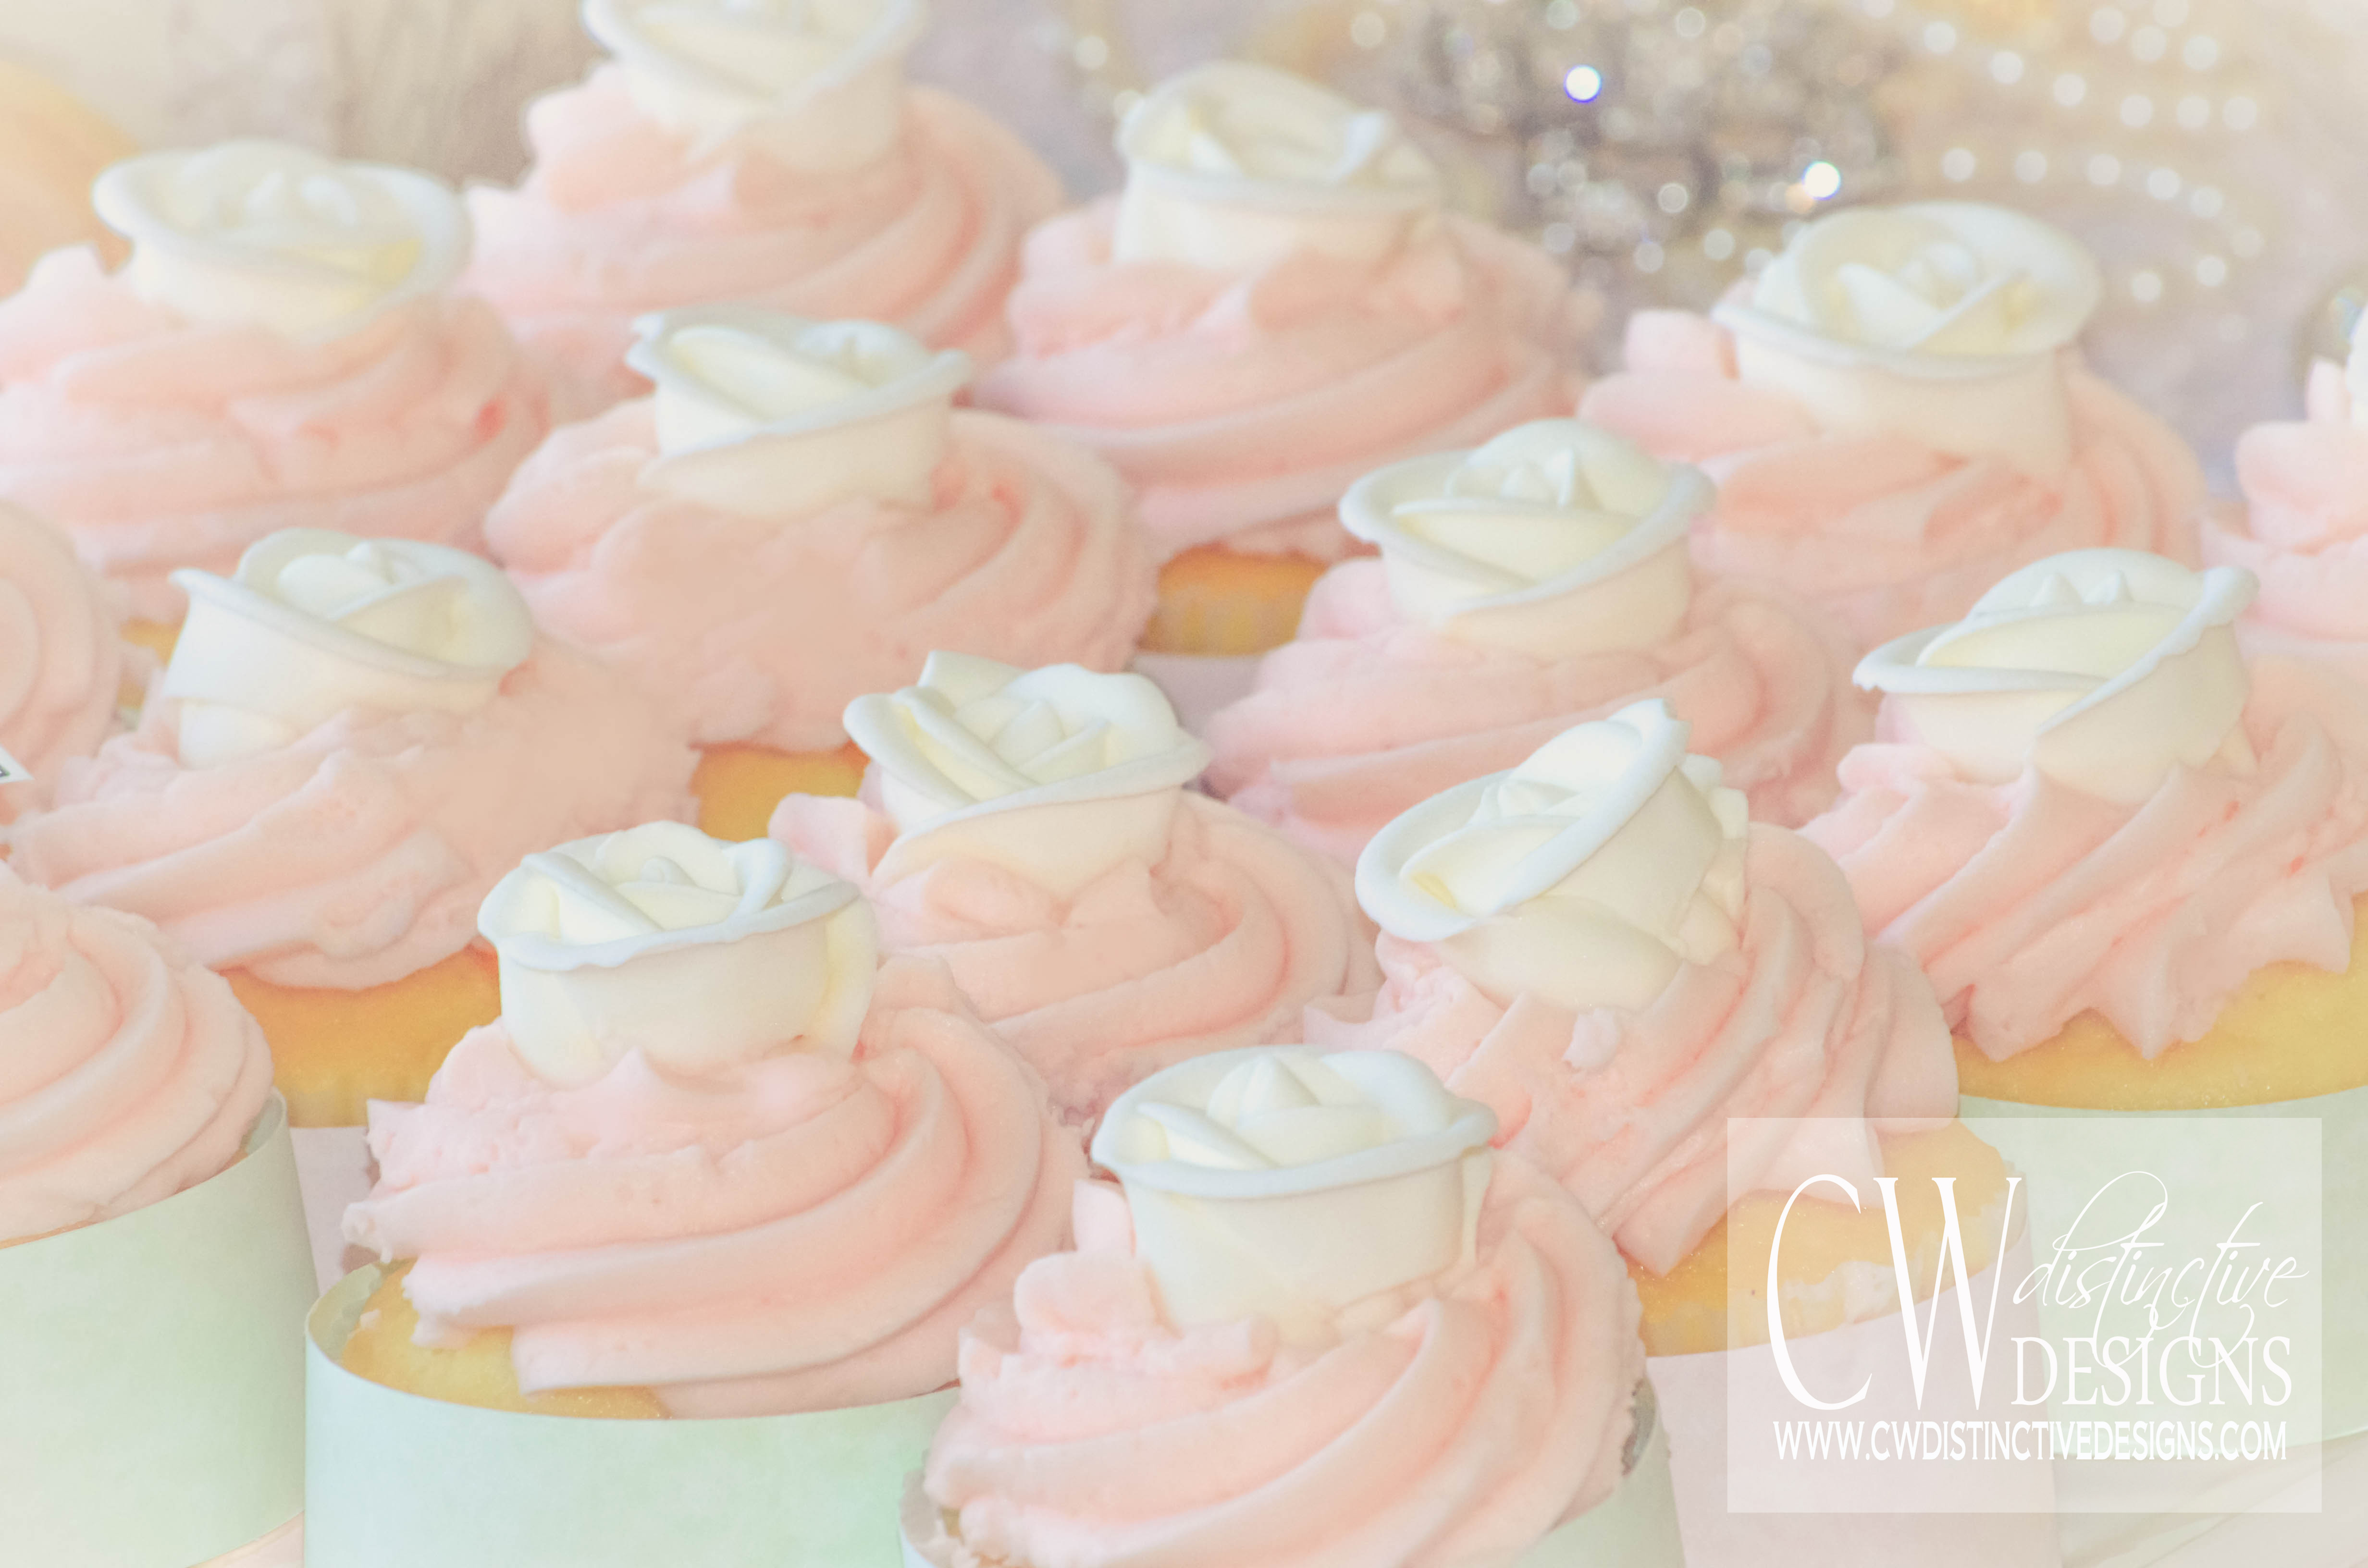 champagne cupcake desserts paris themed dessert menu vintage french macarons bridal shower french petite cakes